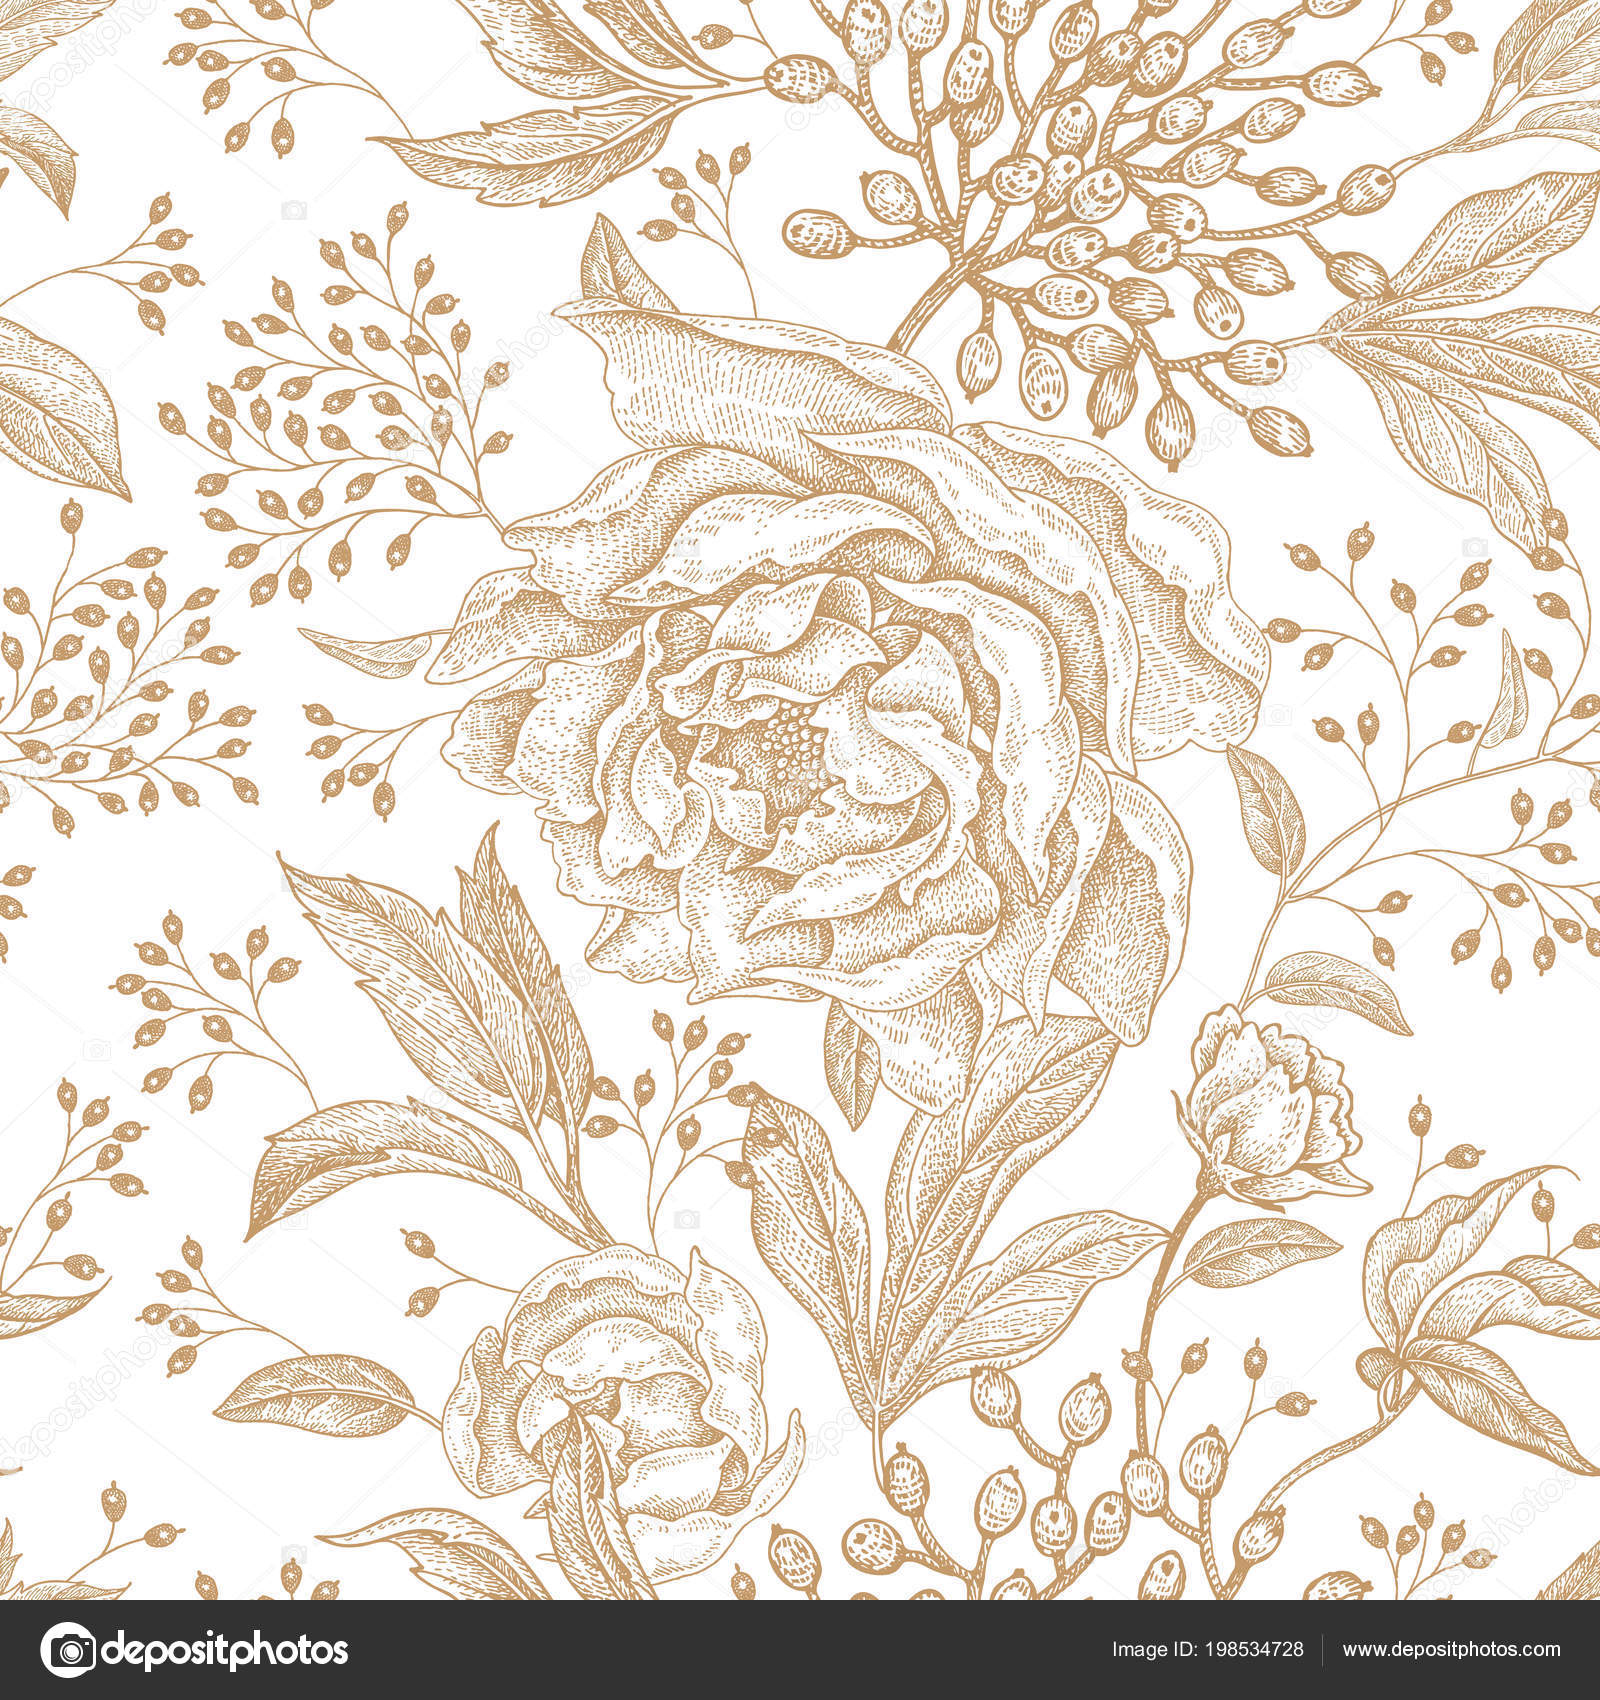 Peonies Roses Floral Vintage Seamless Pattern Gold Flowers Leaves